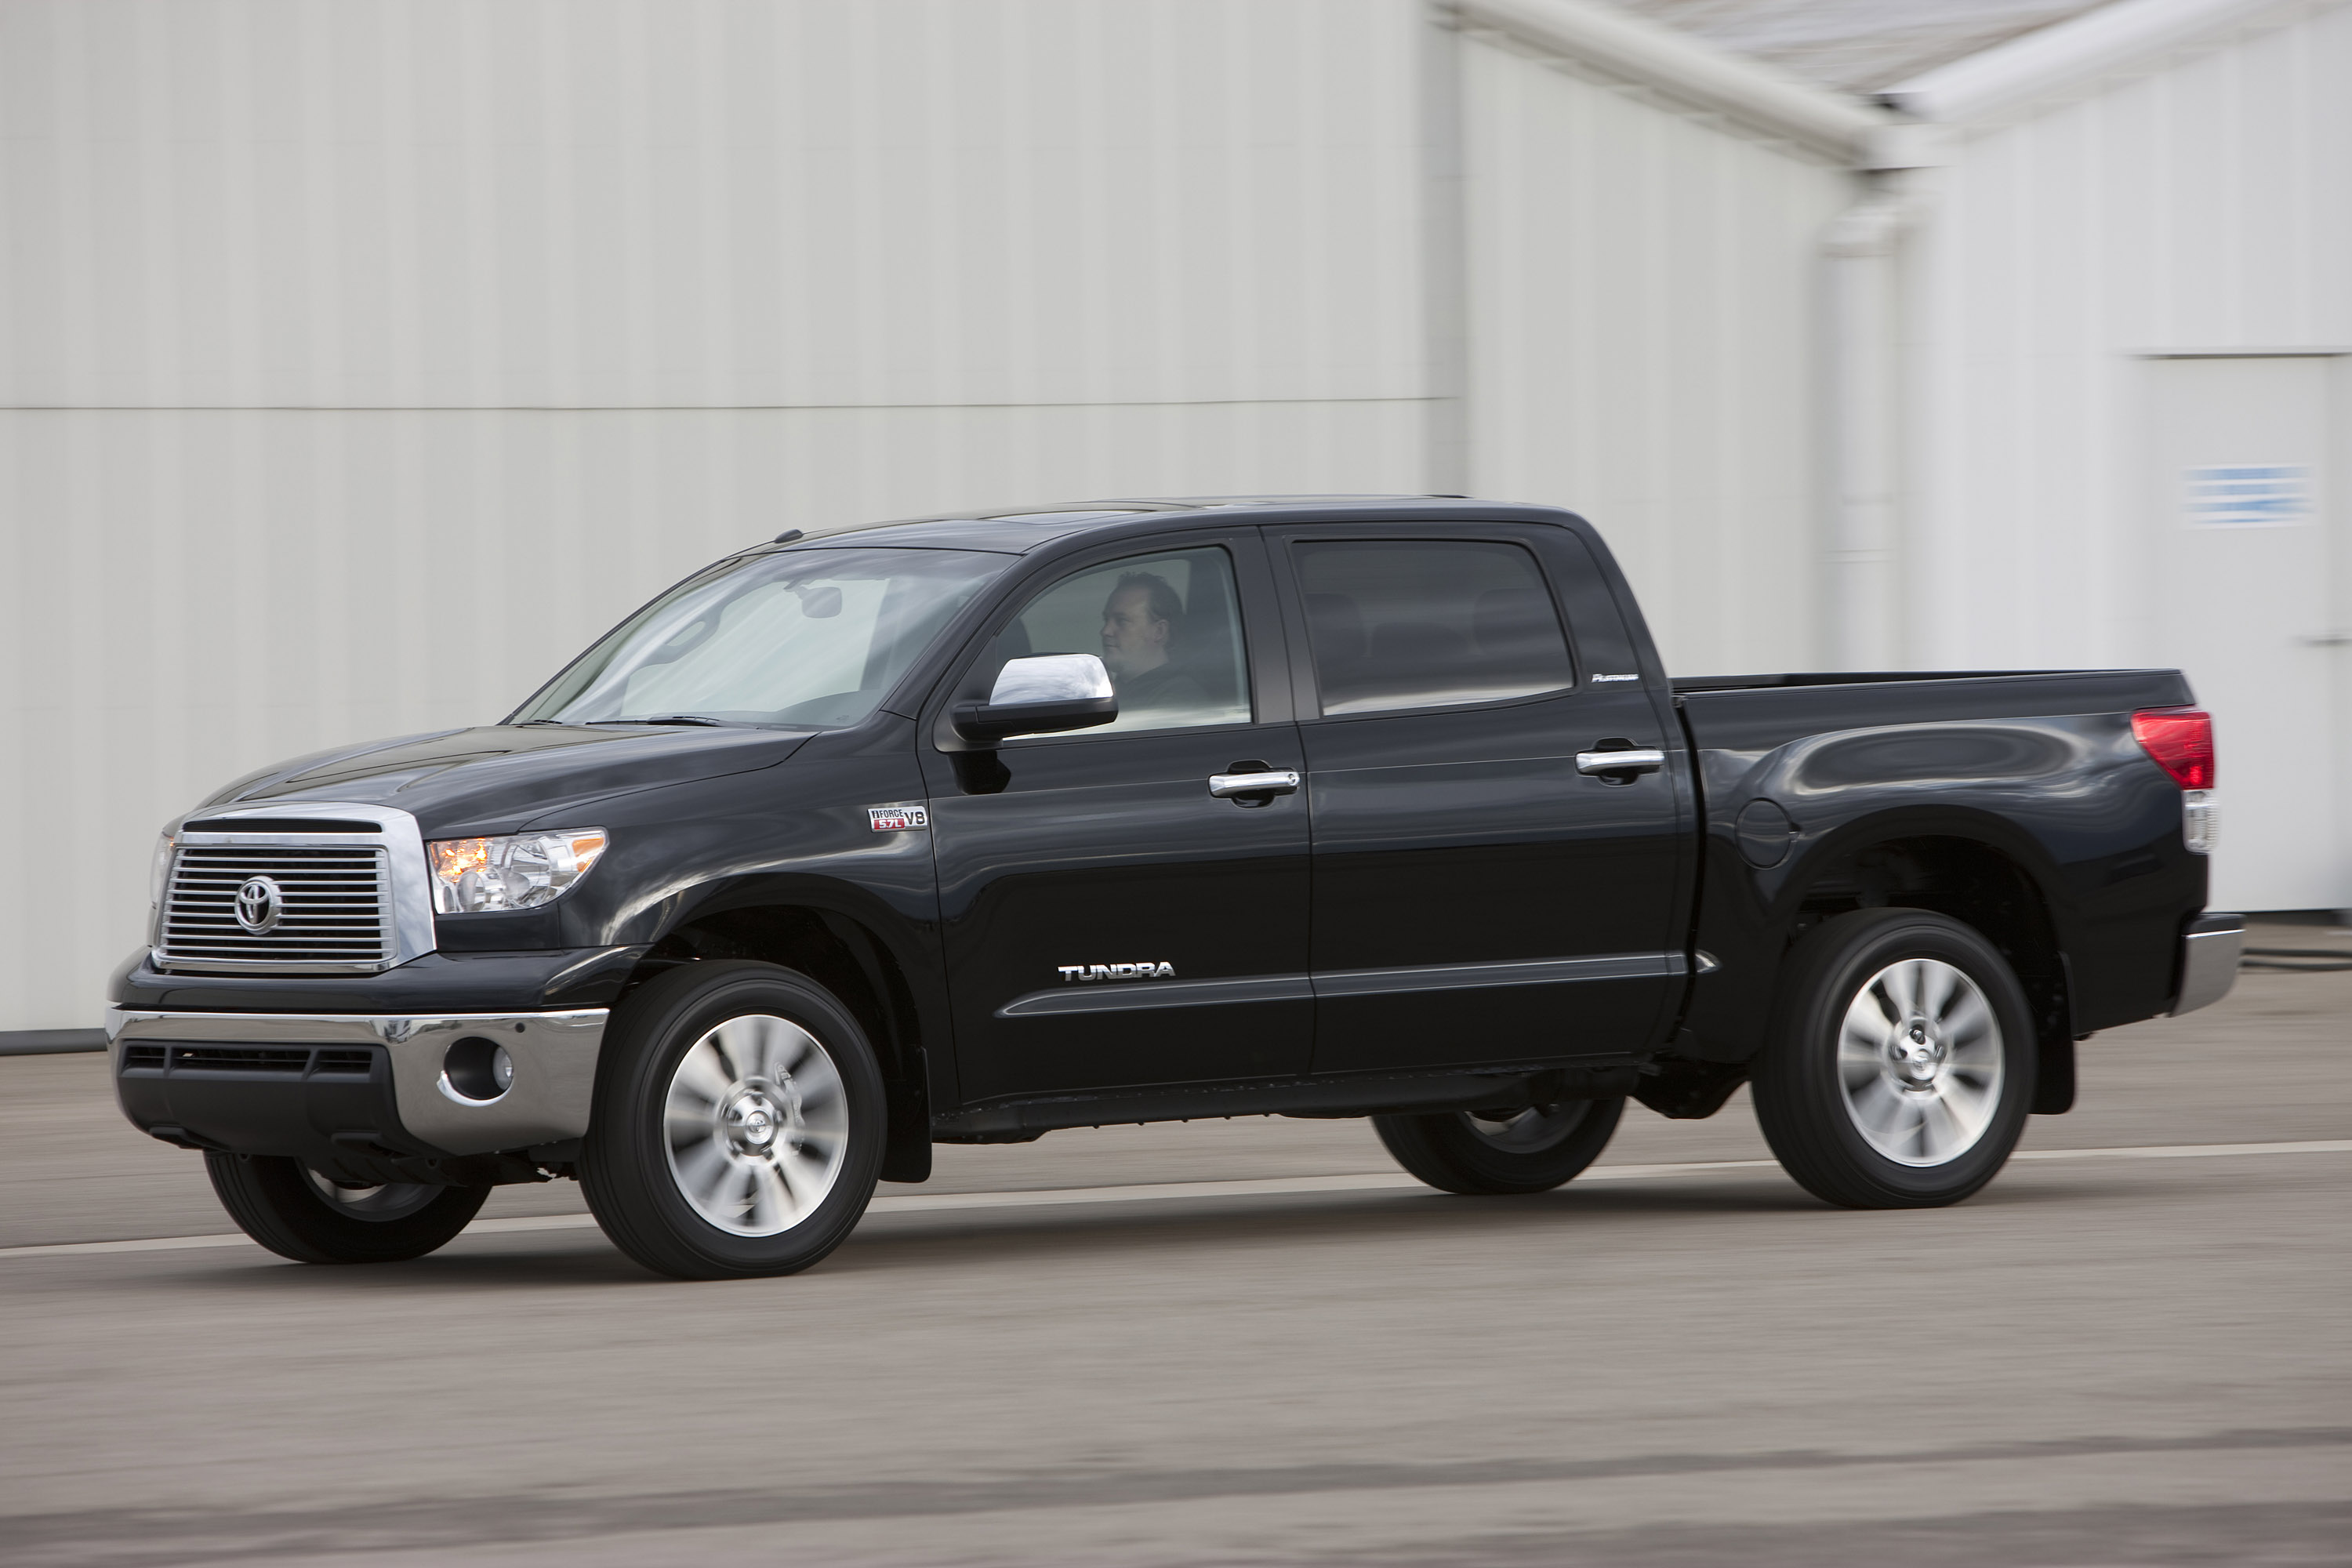 2012 toyota tundra review ratings specs prices and photos the car connection. Black Bedroom Furniture Sets. Home Design Ideas